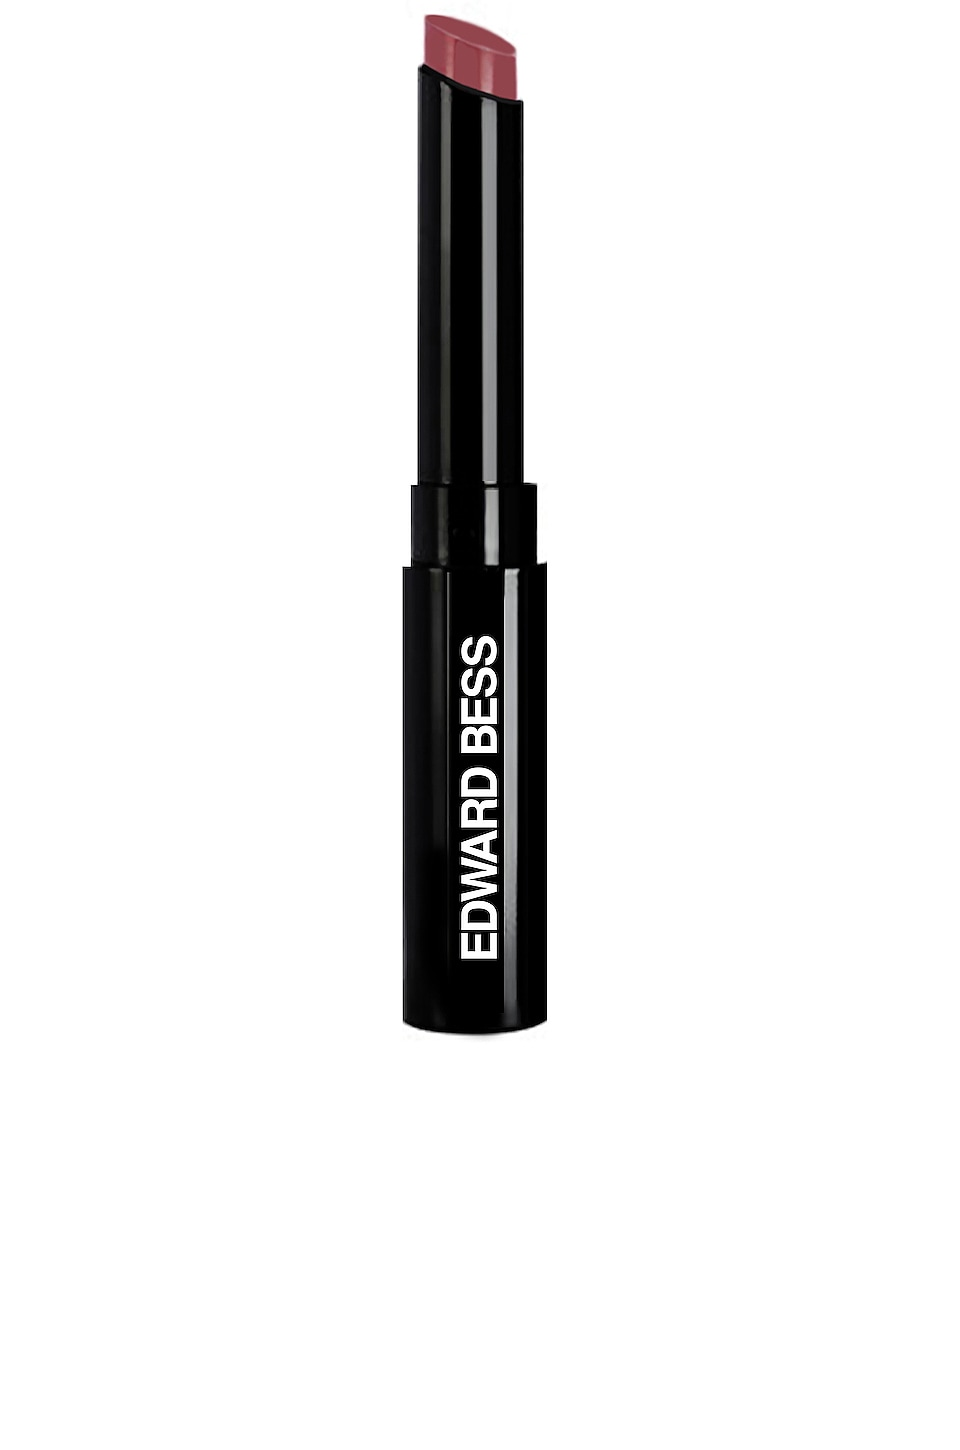 Edward Bess Classic Beauty Lustrous Lip Color in Passion